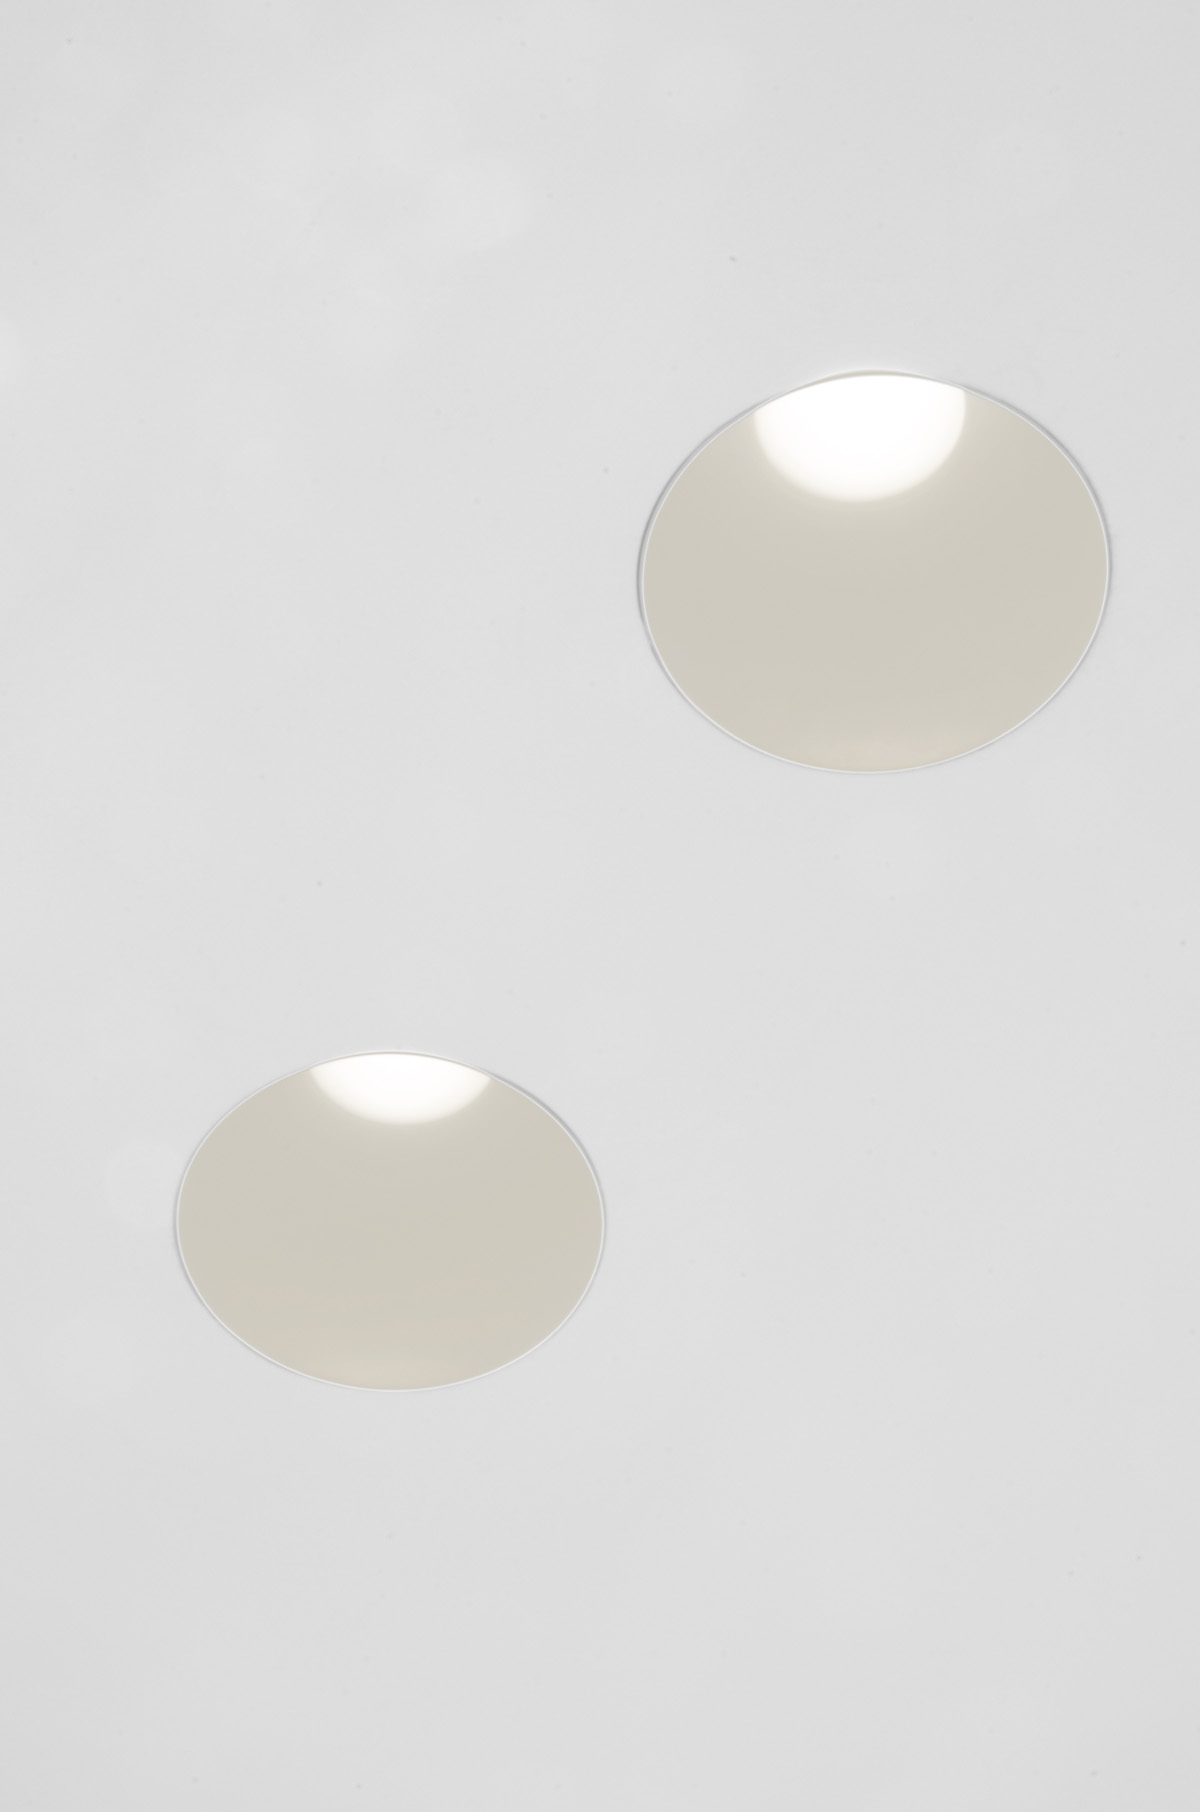 Easy Kap 80 Round Fixed Led Downlights Flos Architectural